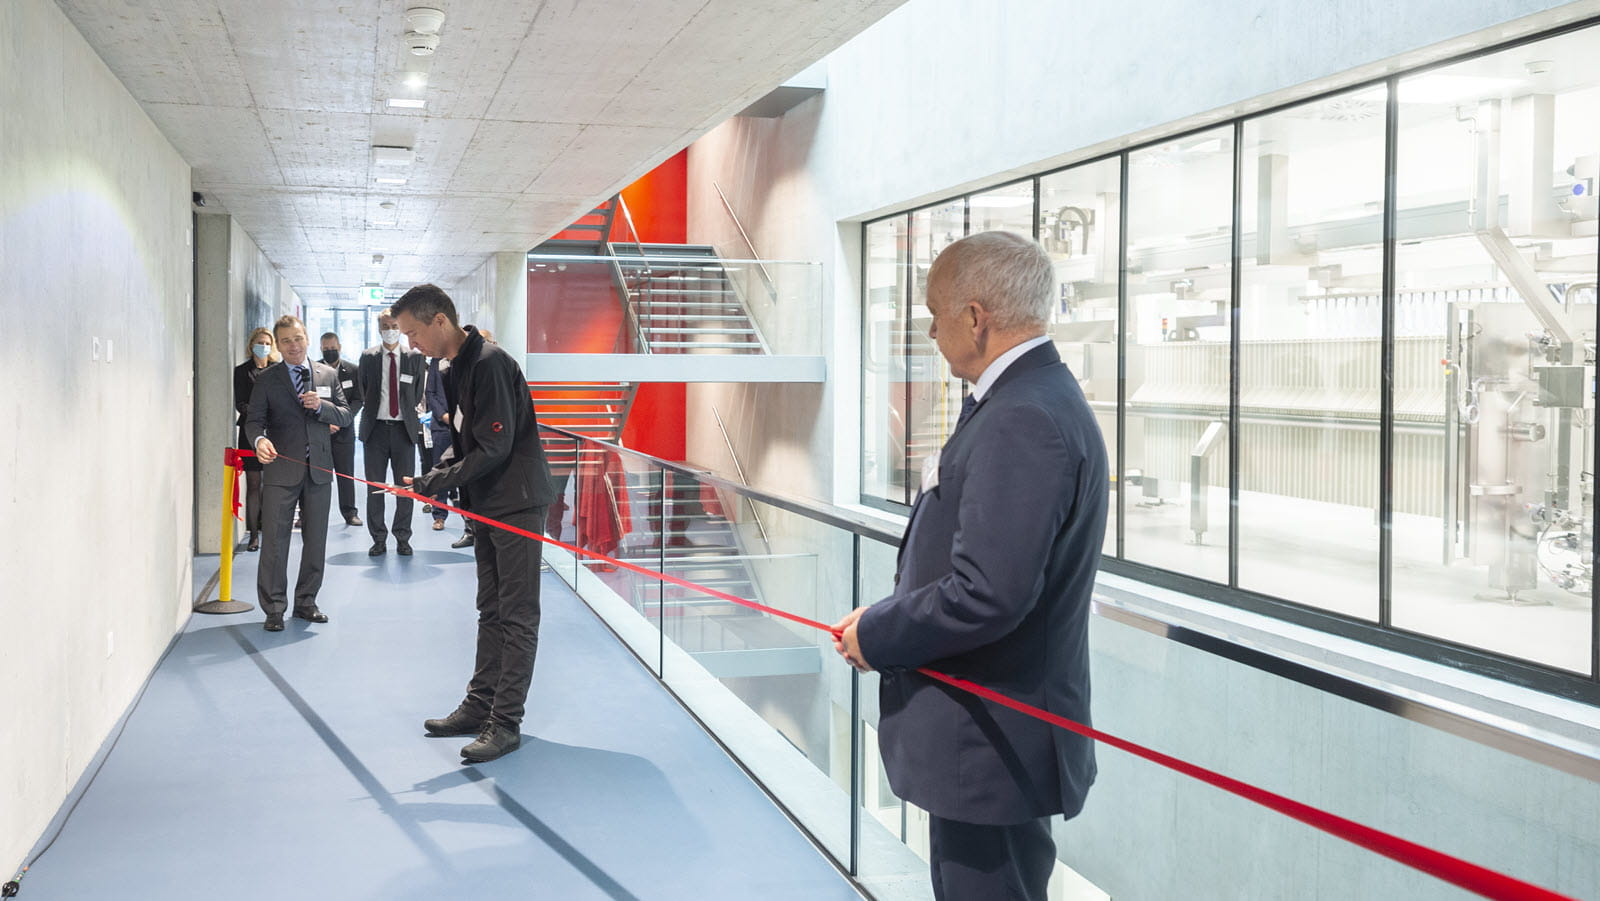 Officials in Bern, Switzerland, cut the ribbon on an expansion at CSL Behring's facility.